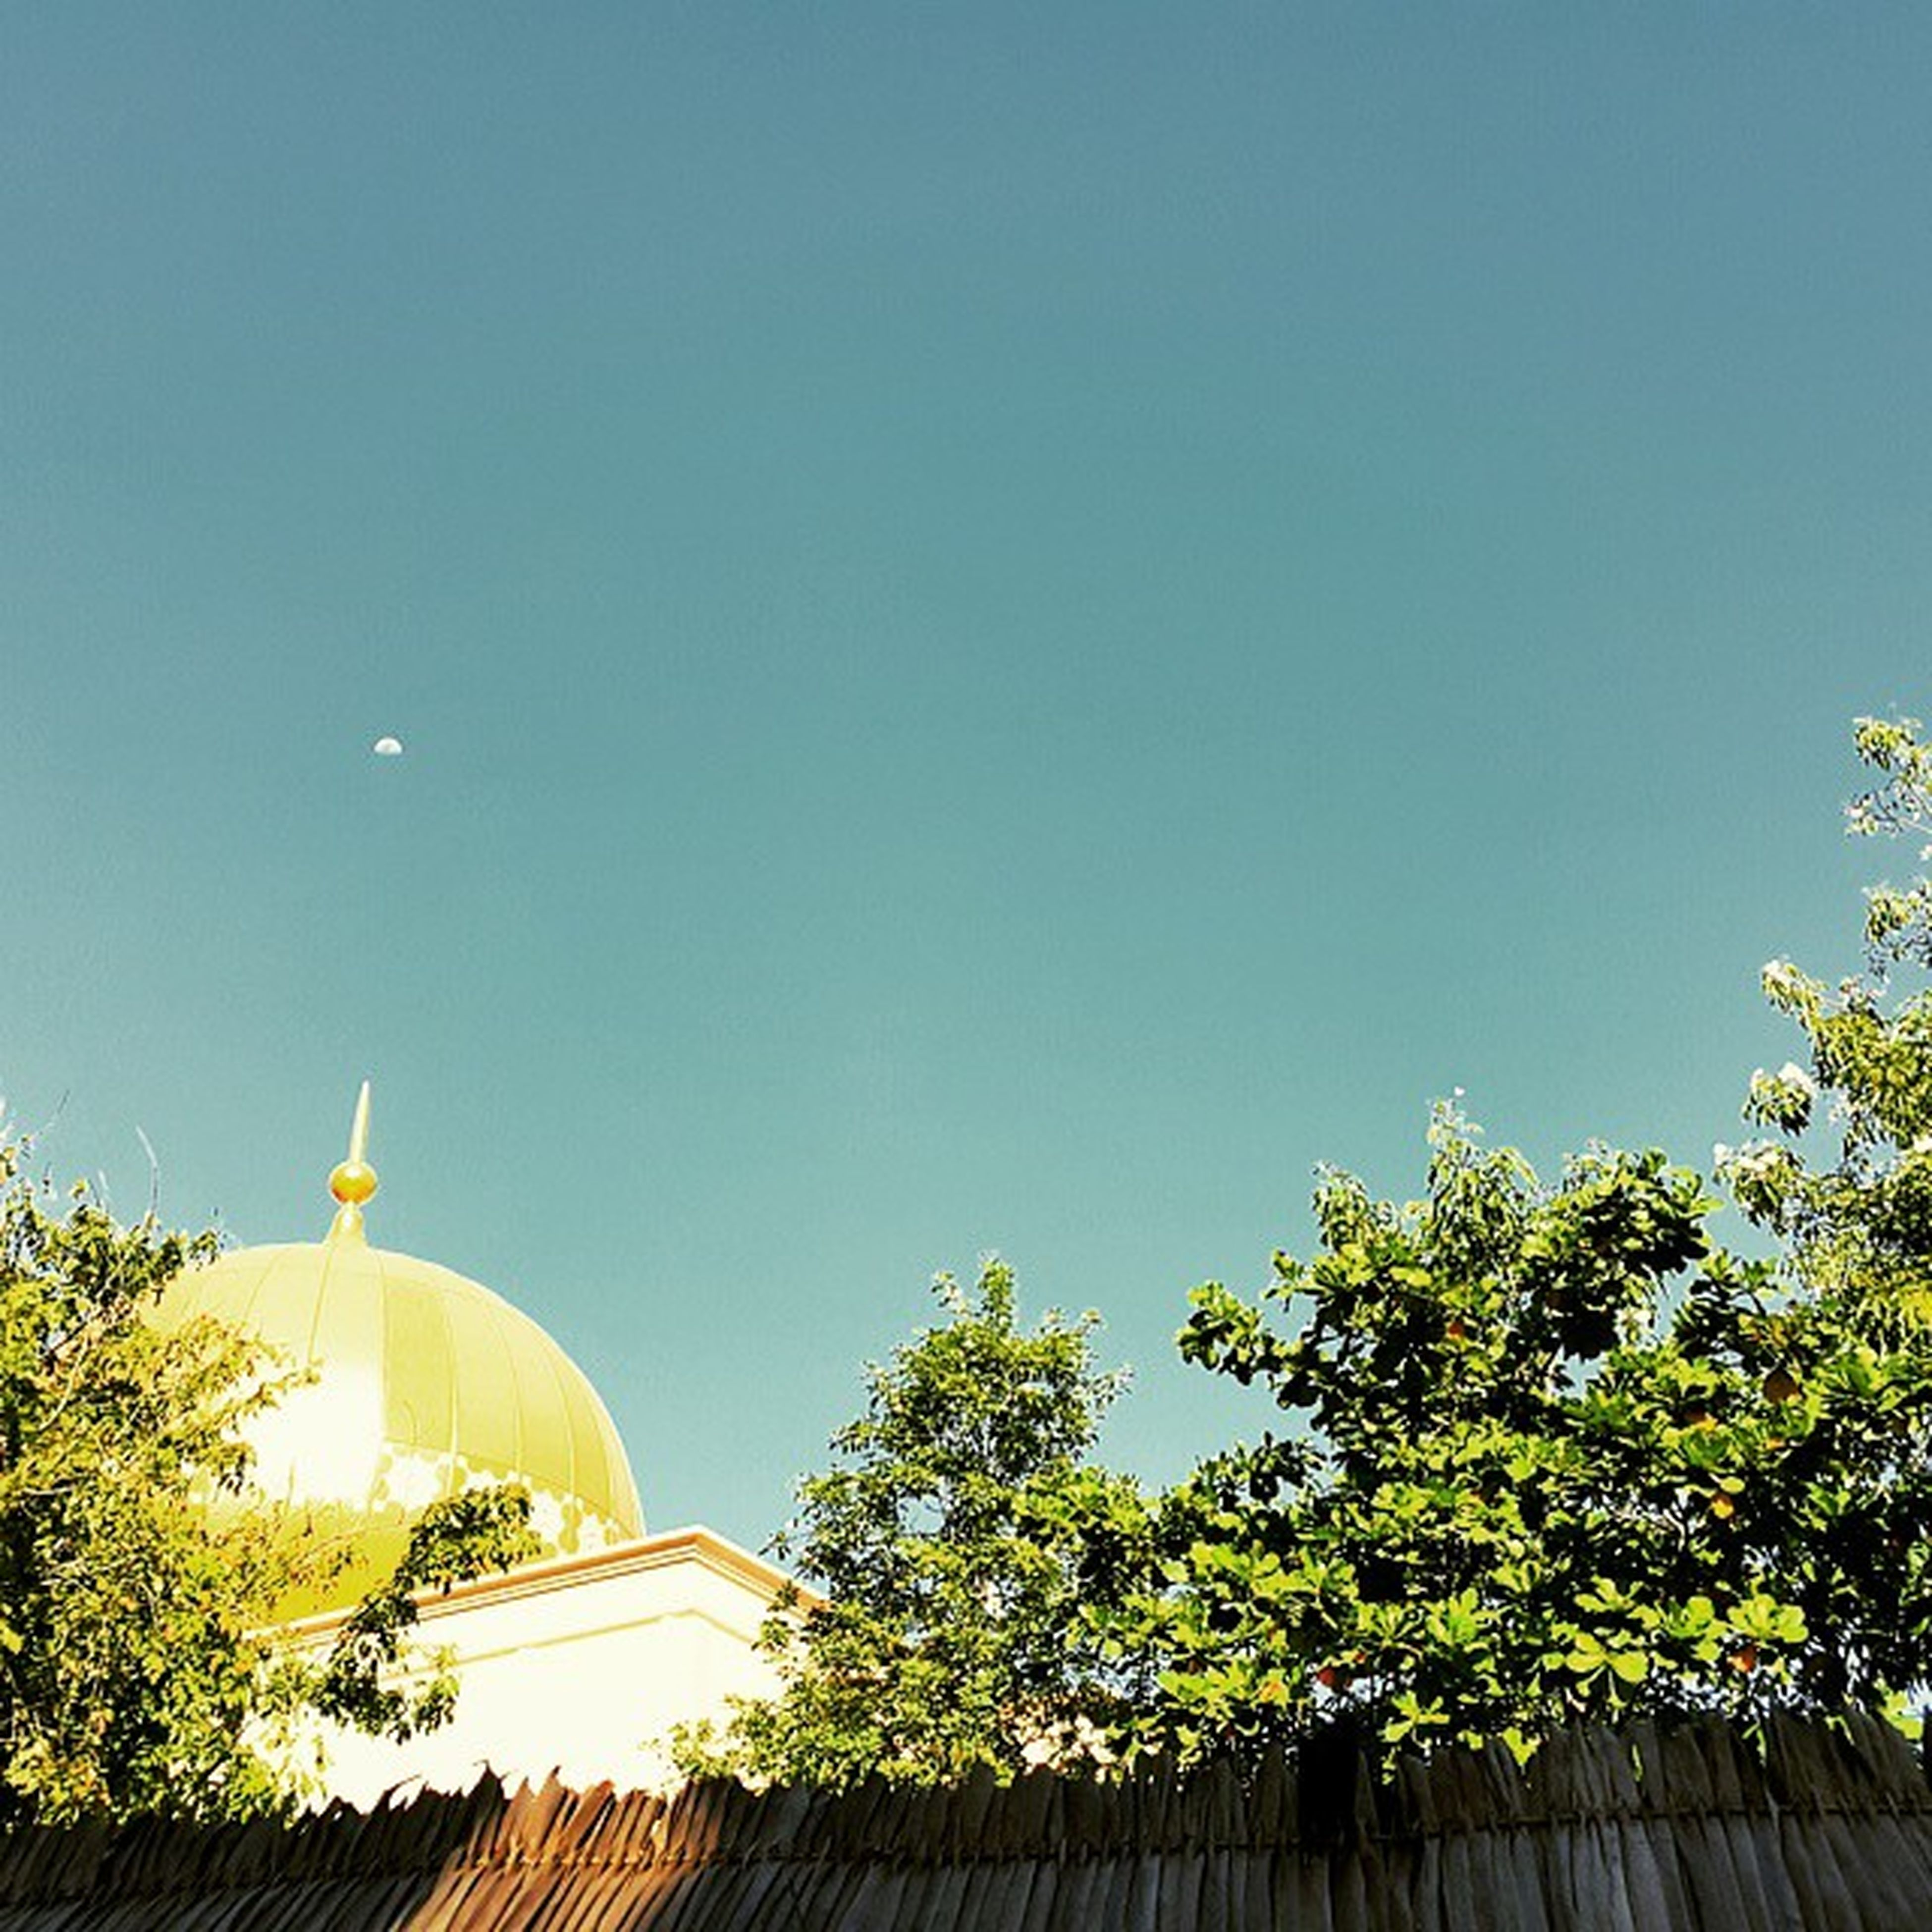 clear sky, low angle view, architecture, built structure, copy space, building exterior, tree, high section, blue, religion, place of worship, spirituality, dome, outdoors, no people, famous place, sky, travel destinations, sculpture, day